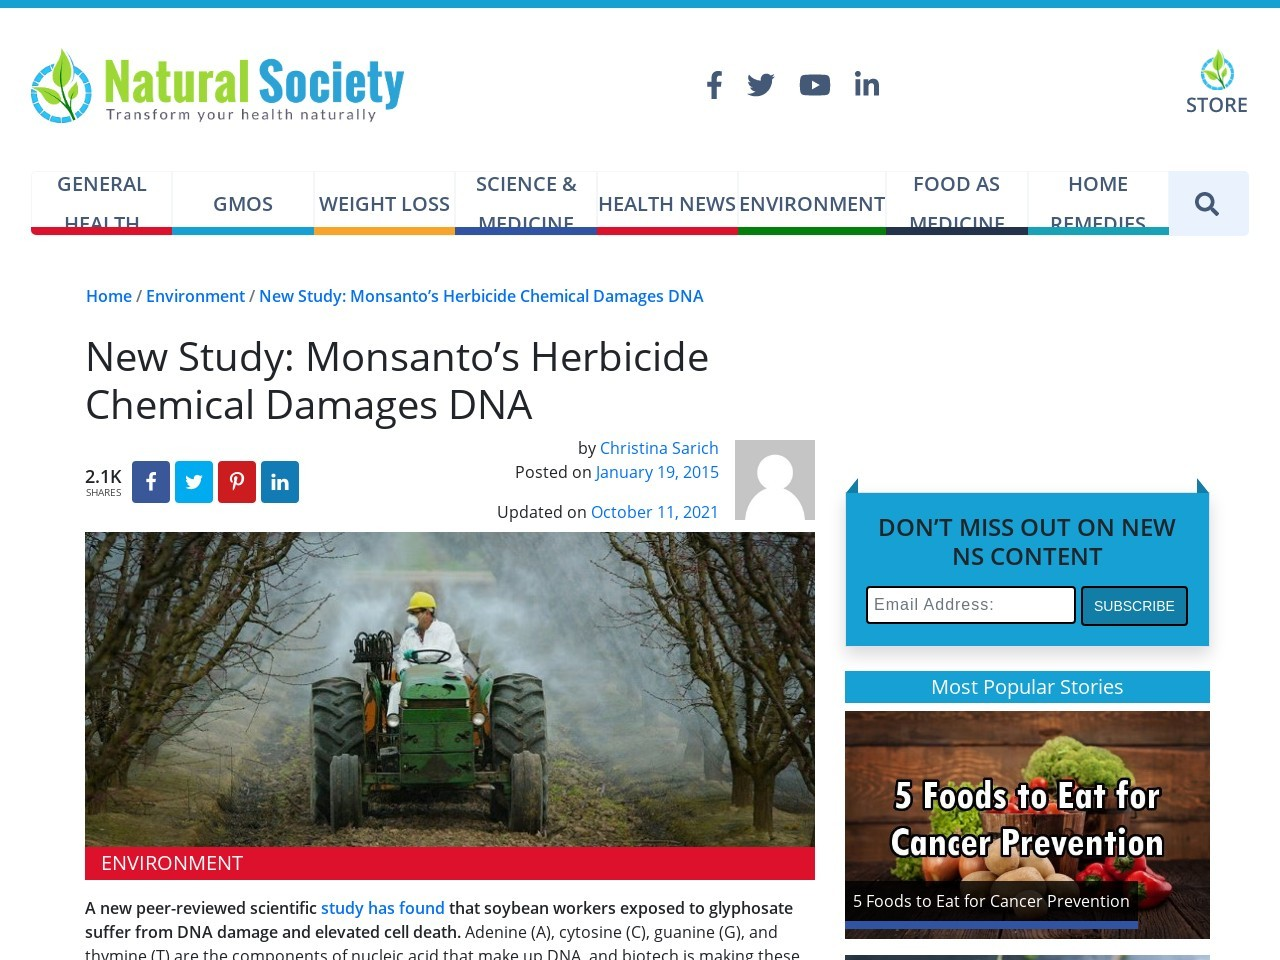 New Study: Monsanto's Herbicide Chemical Damages DNA